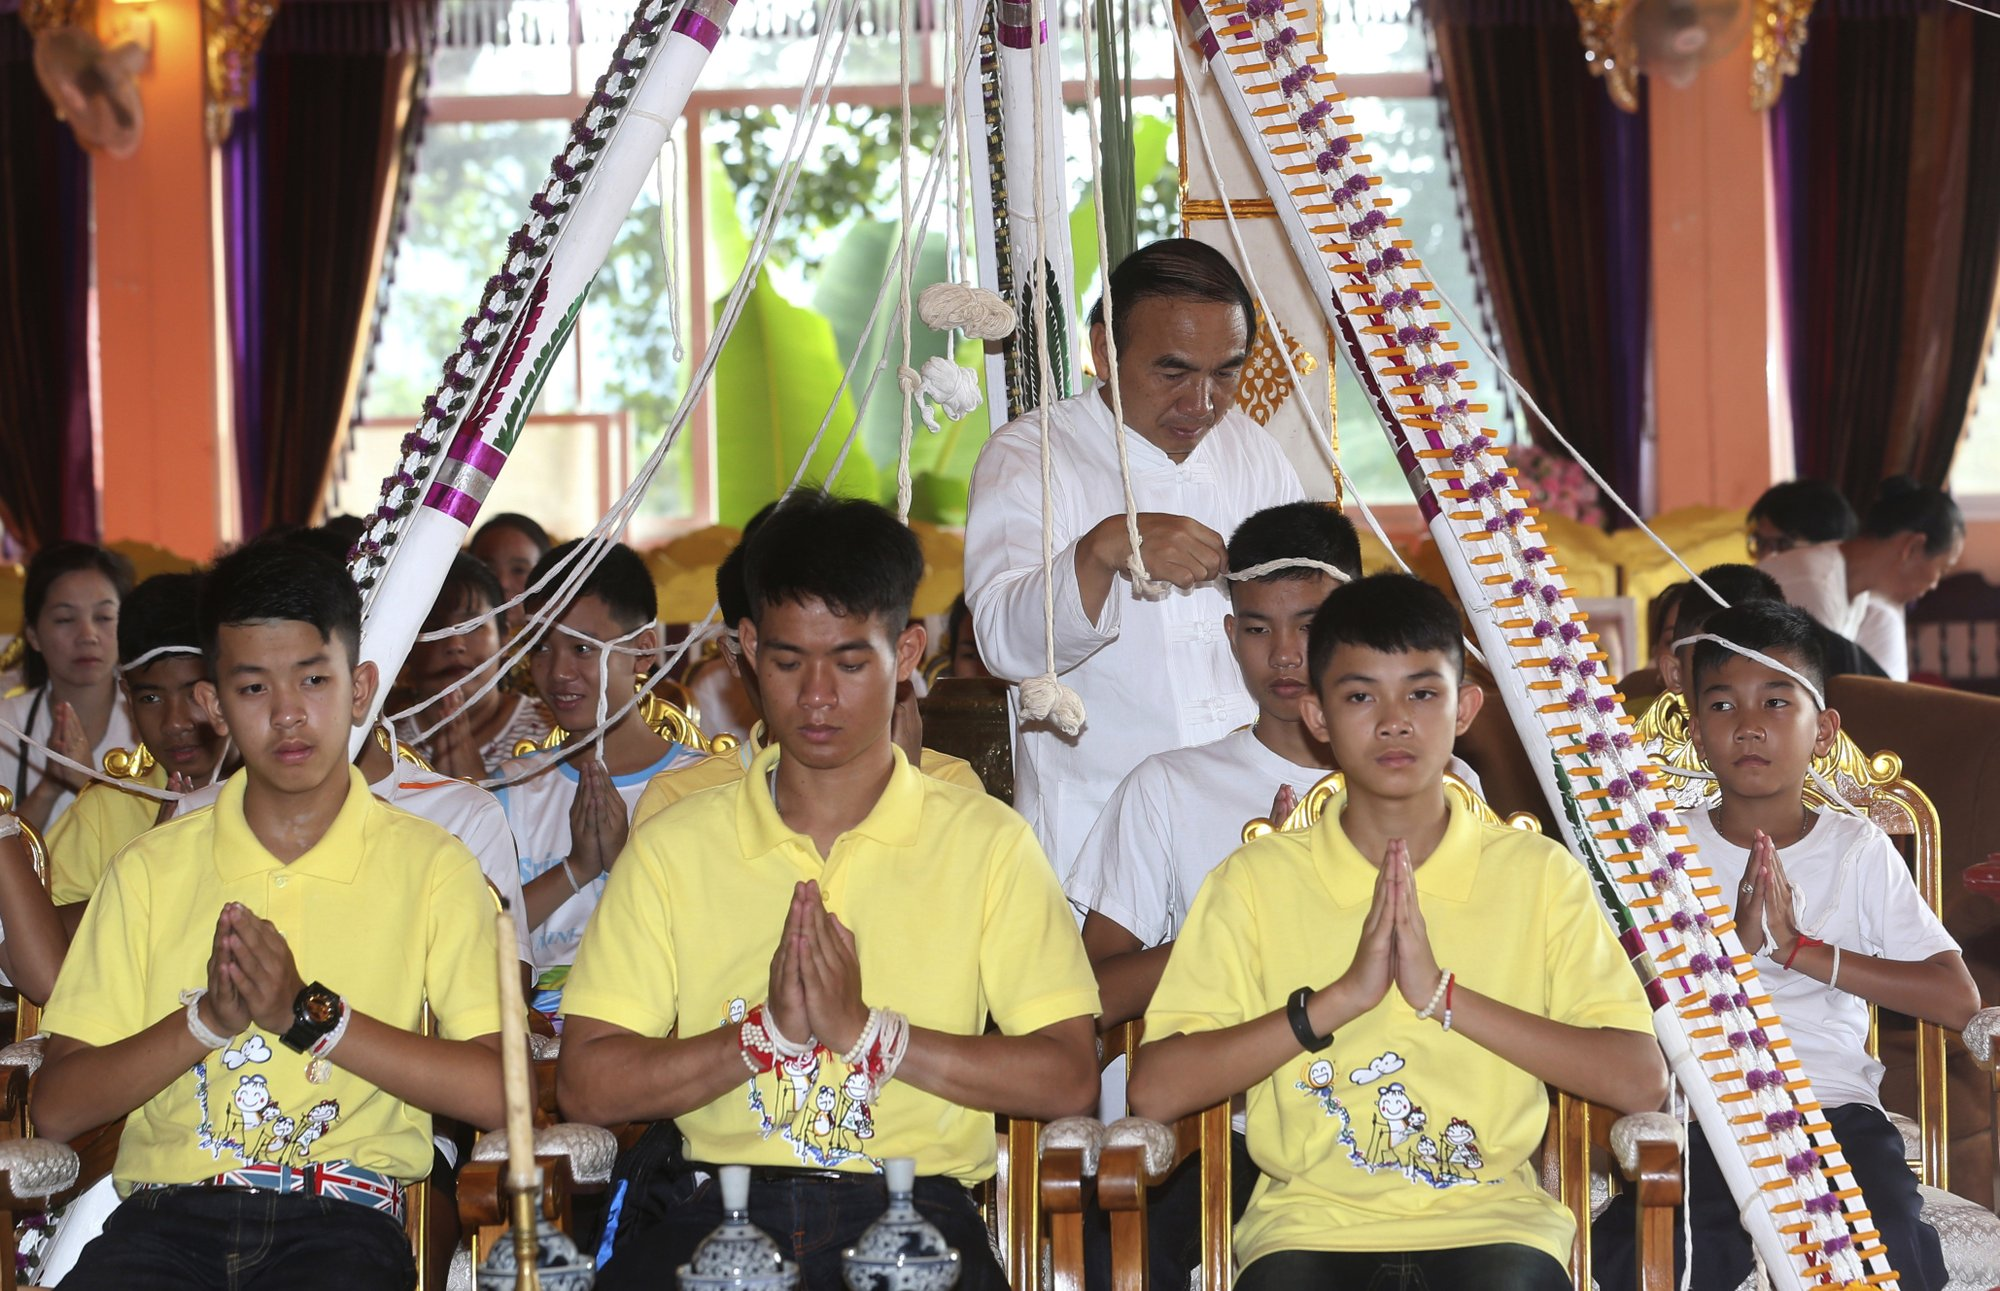 After rescue, soccer boys pray for protection at Thai temple